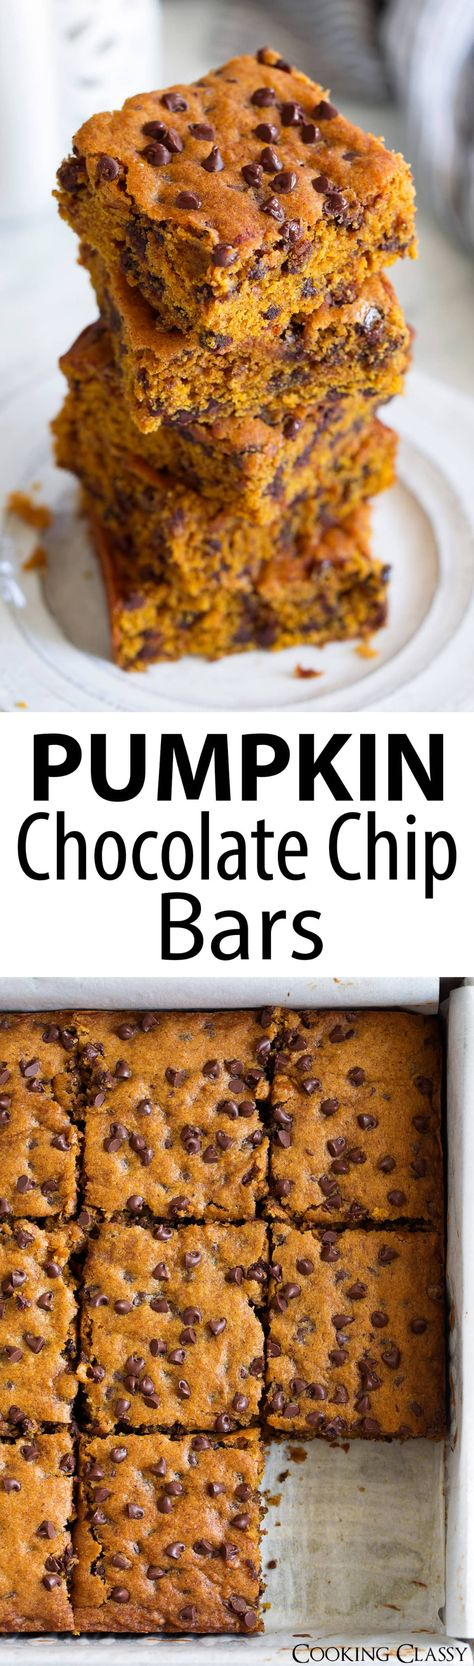 Pumpkin Chocolate Chips Bars - these are the perfect autumn treat! Soft, moist and delicious flavor! Love those bits of mini chocolate chips. #pumpkinbars #chocolatechip #fall #dessert #thanksgiving #recipe #cookingclassy